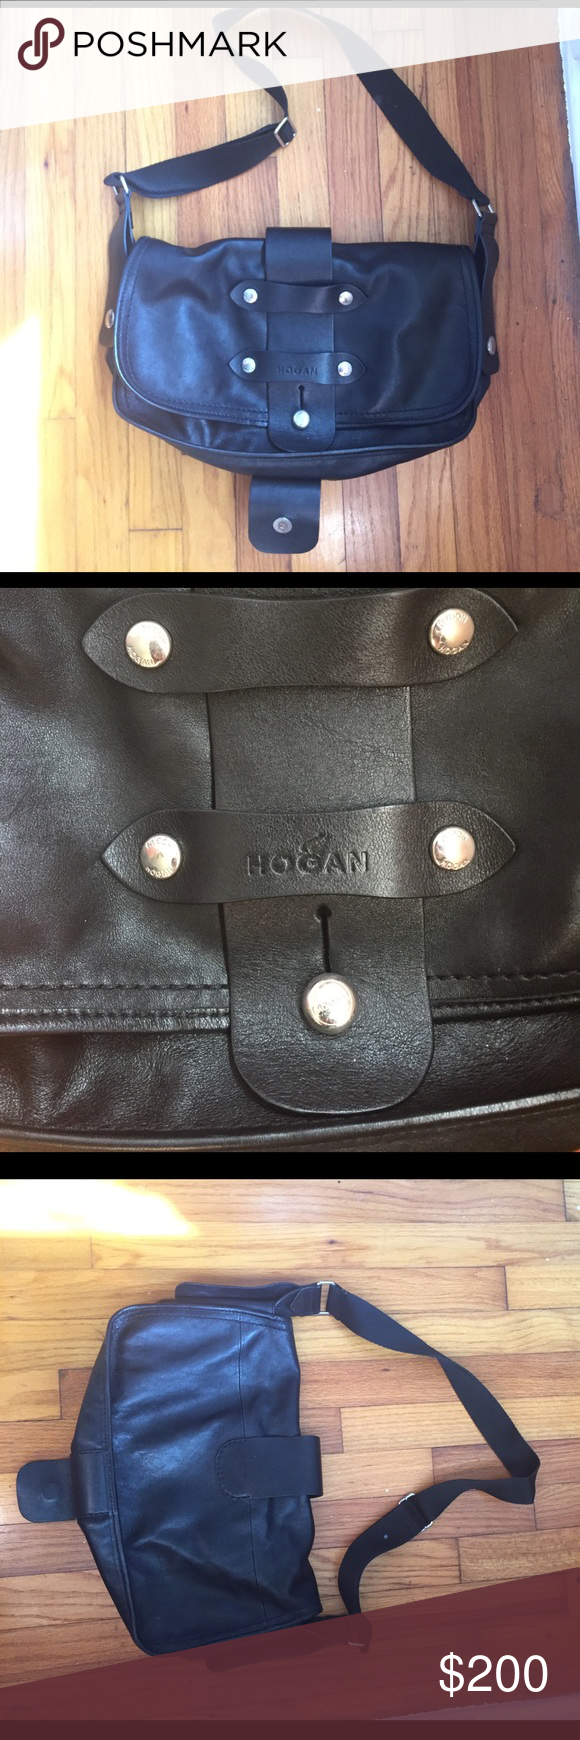 Hogan shoulder bag Hogan brand black leather shoulder bag. Made in Italy. Bag is in great condition. Has minor wear on the metal magnet closing piece as indicated in the photo. Timeless bag that looks great with anything! Has an inside pocket and an adjustable strap. Hogan Bags Shoulder Bags